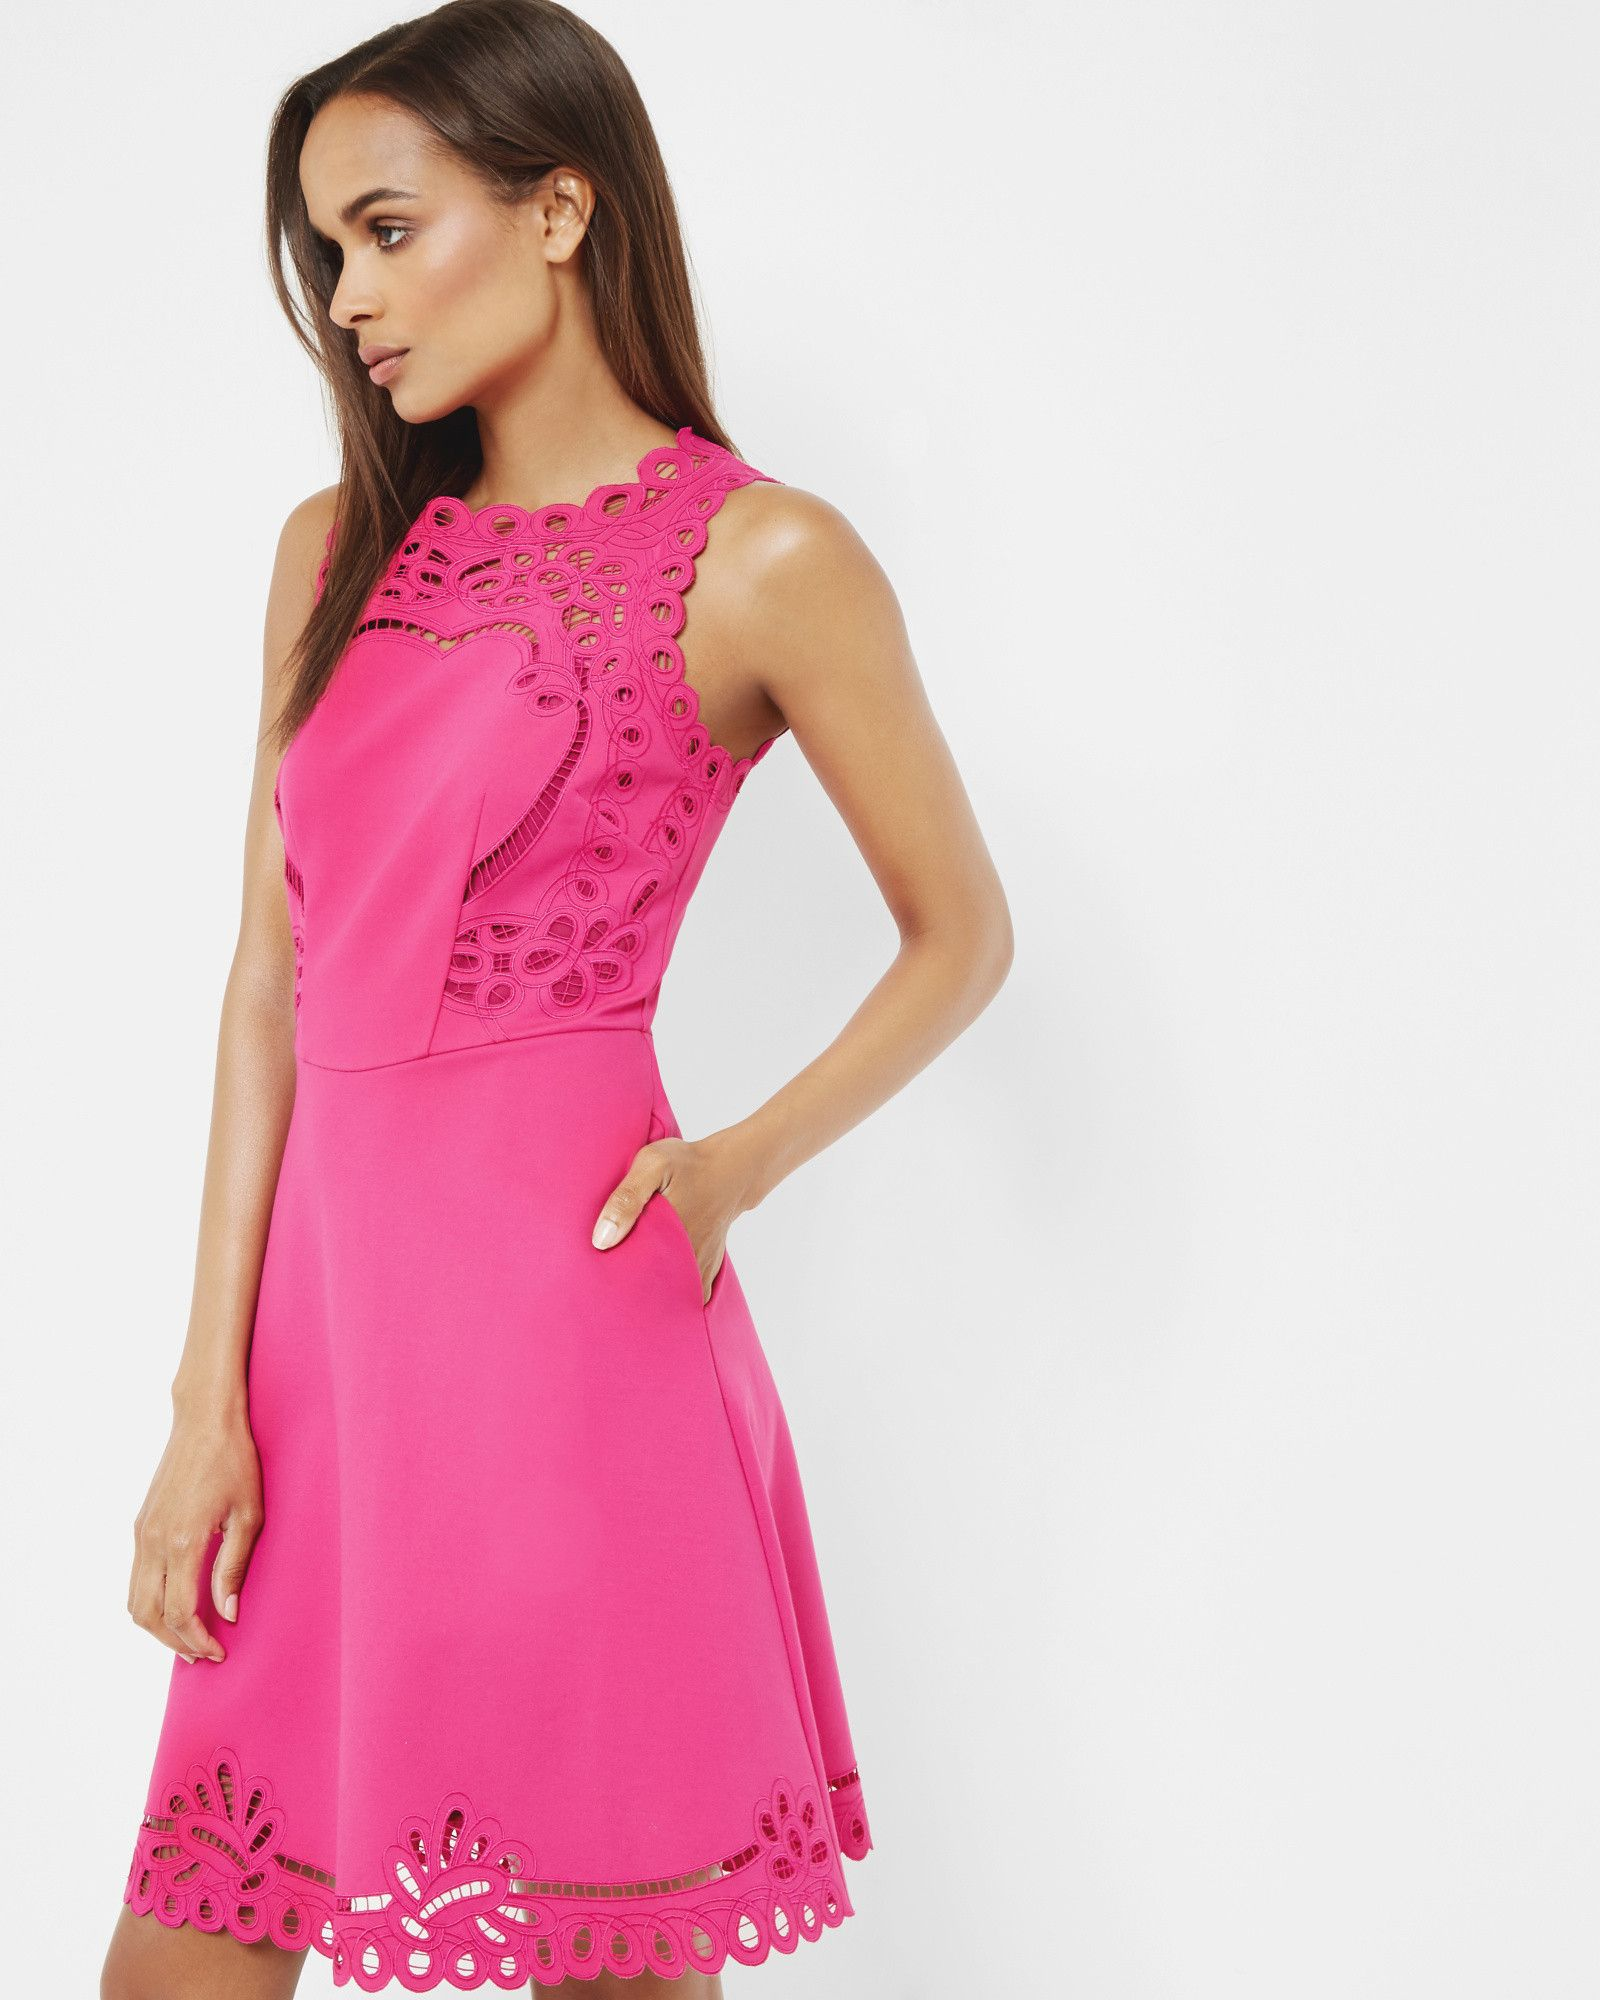 Ted Baker Cut-work skater dress Bright Pink | Products | Pinterest